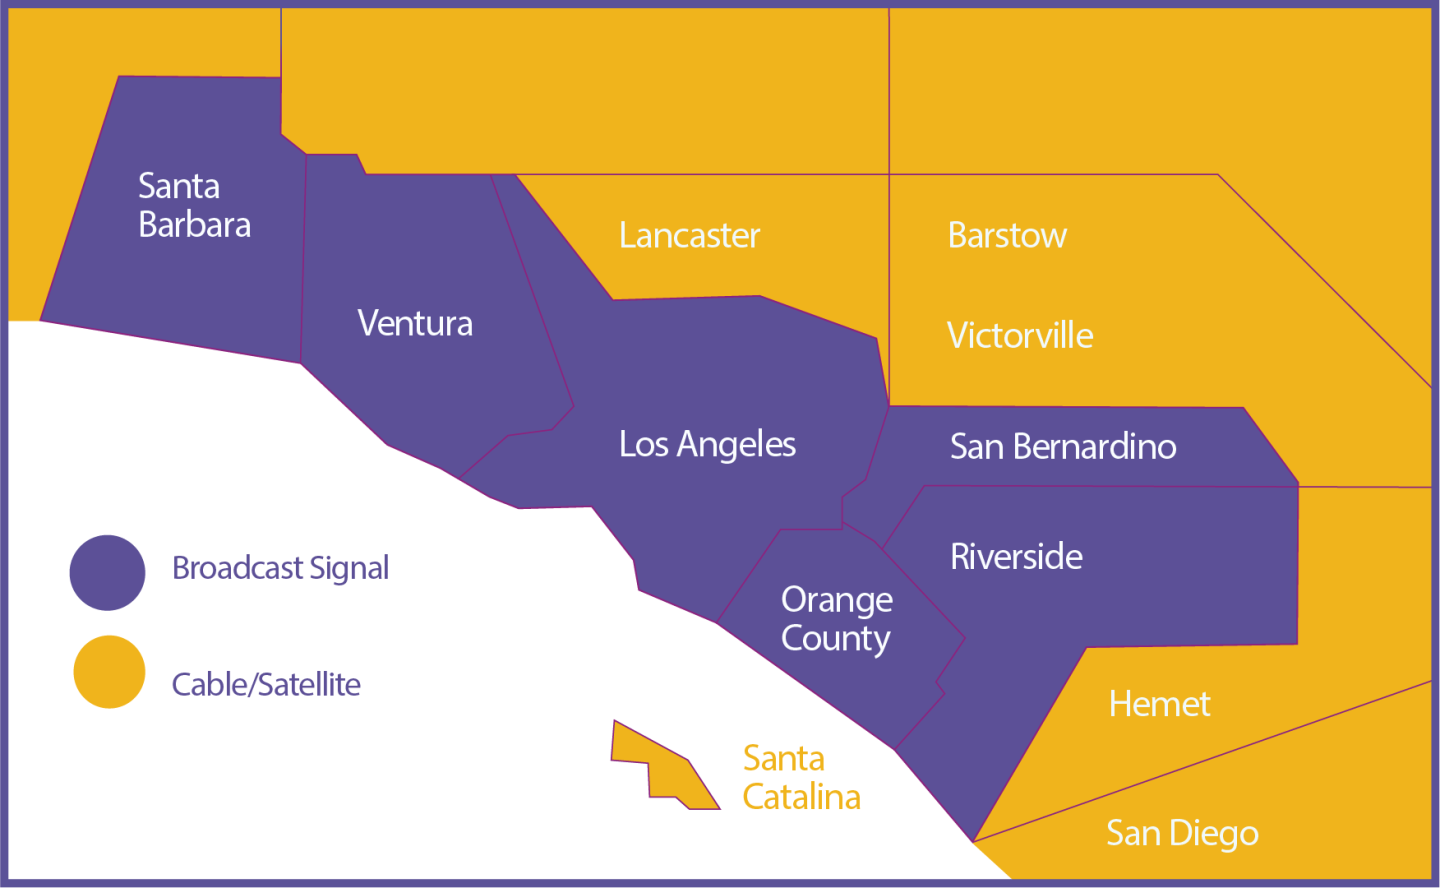 PBS SoCal broadcast map